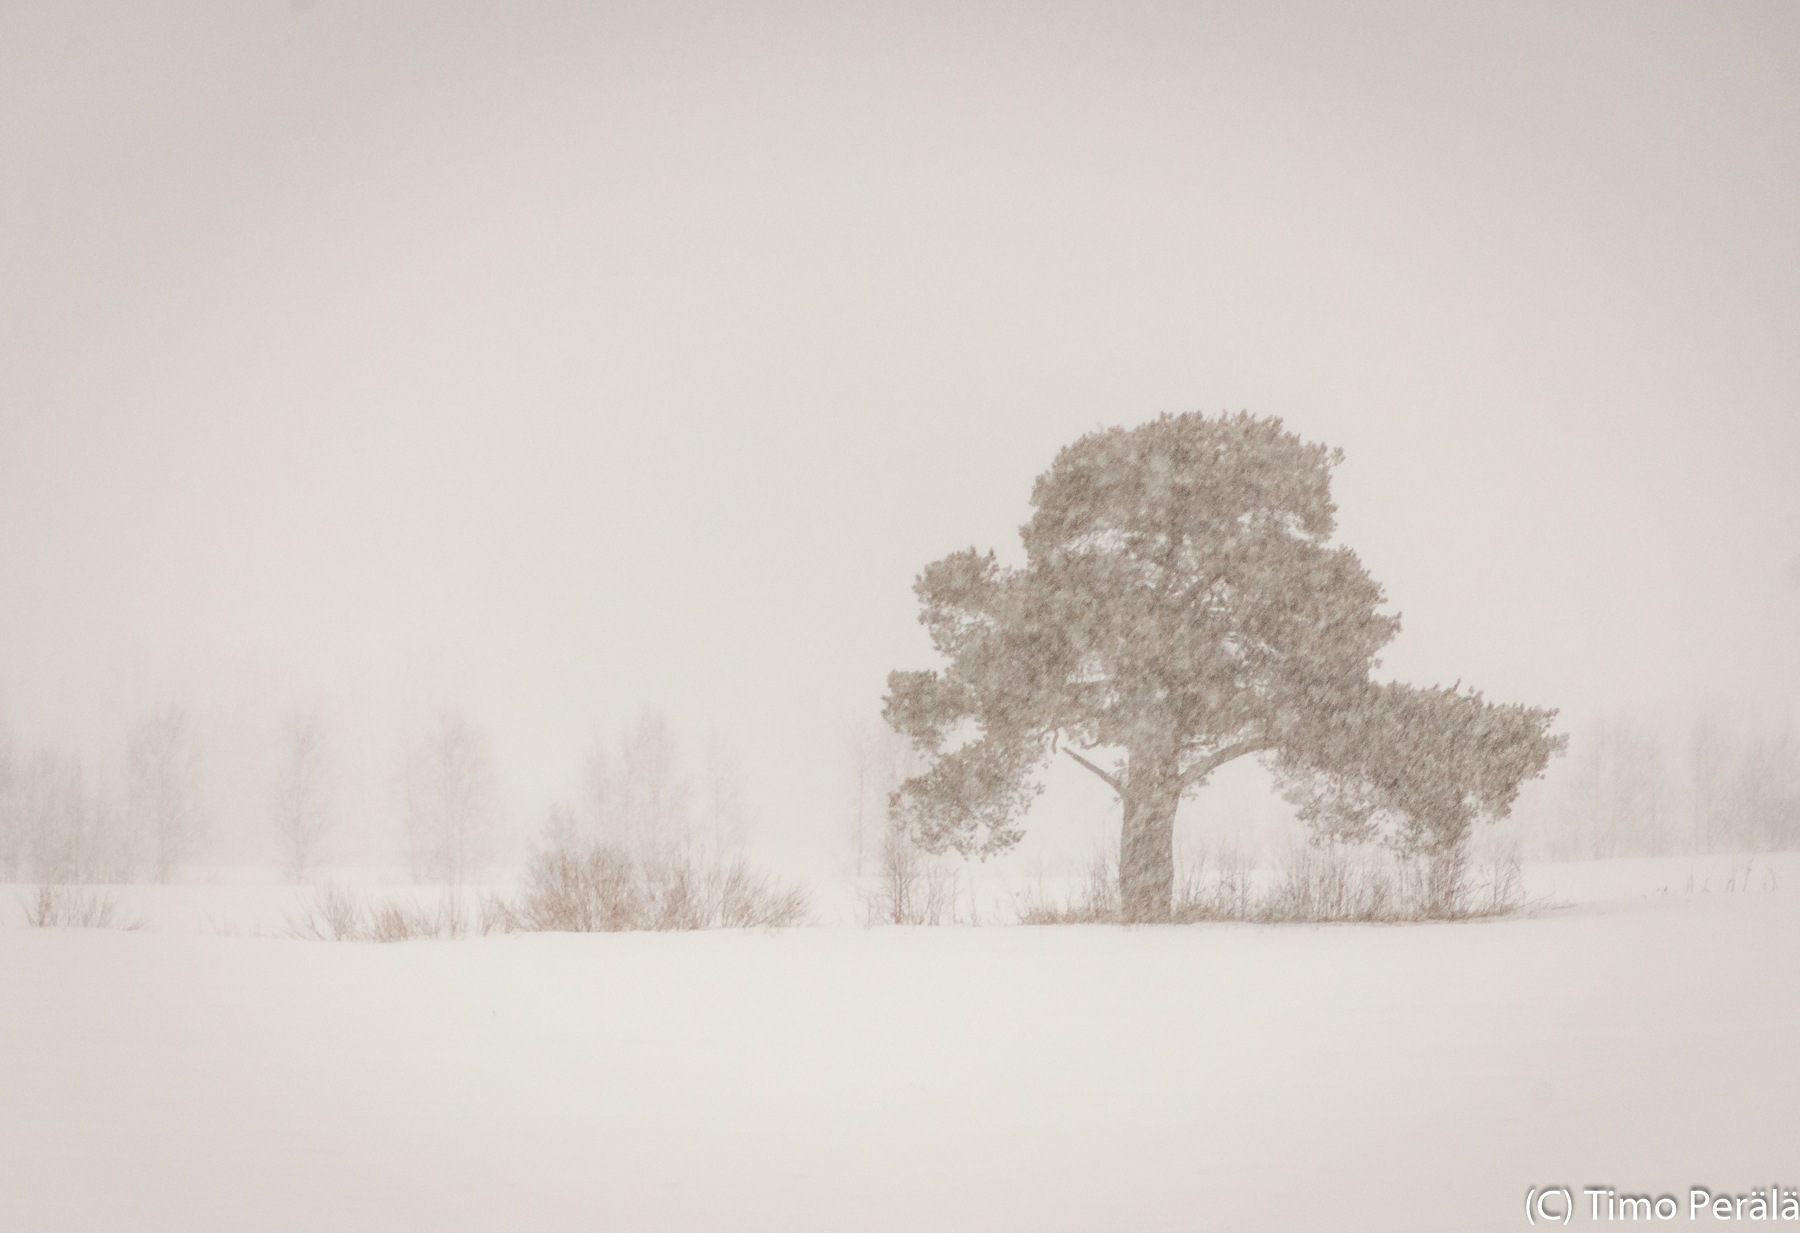 Snowing by Timo Perala